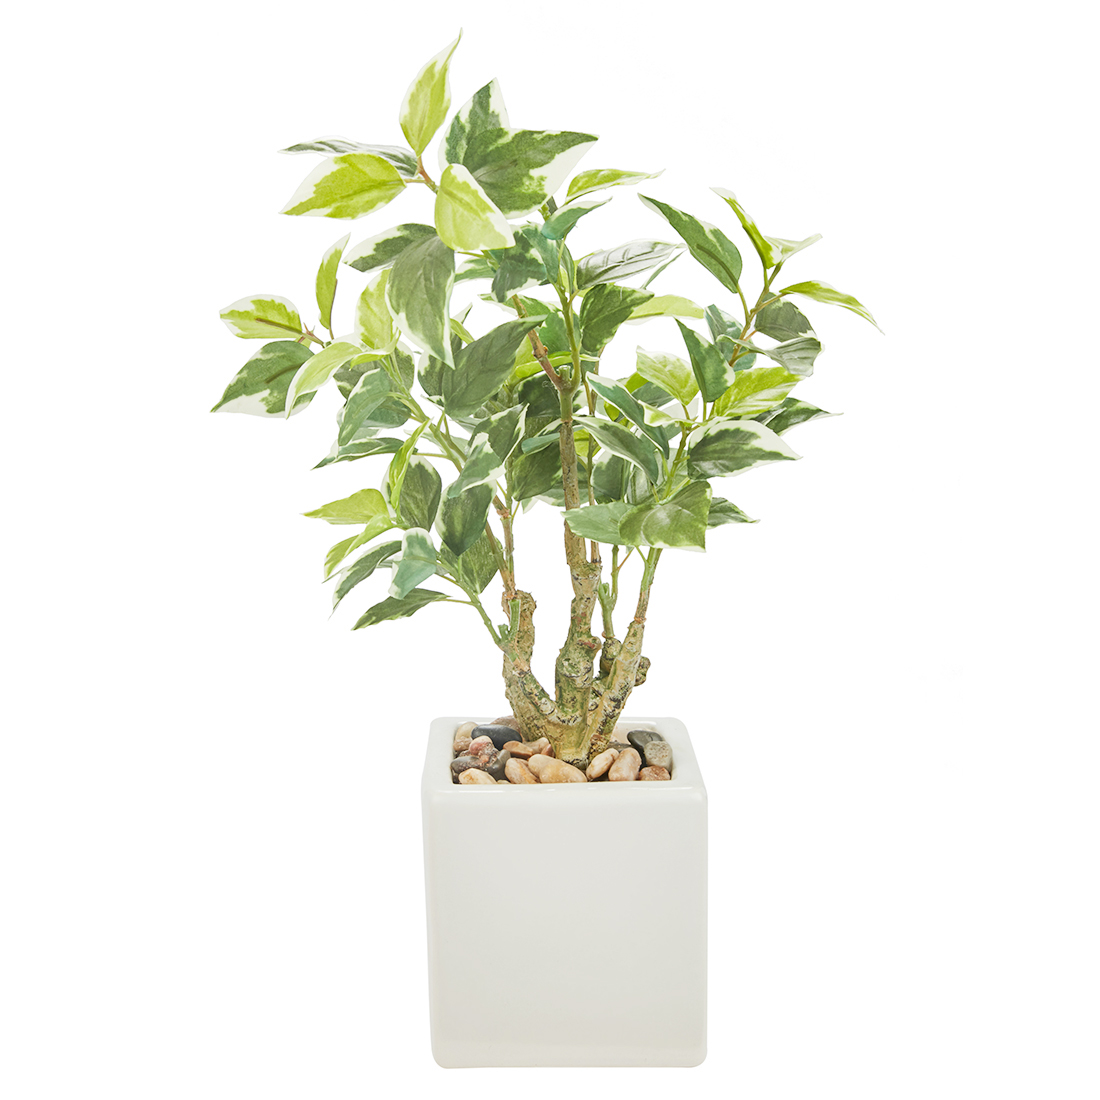 Sage Pepperomia Plant 31 Cm Artificial Plants in Green Colour by Living Essence